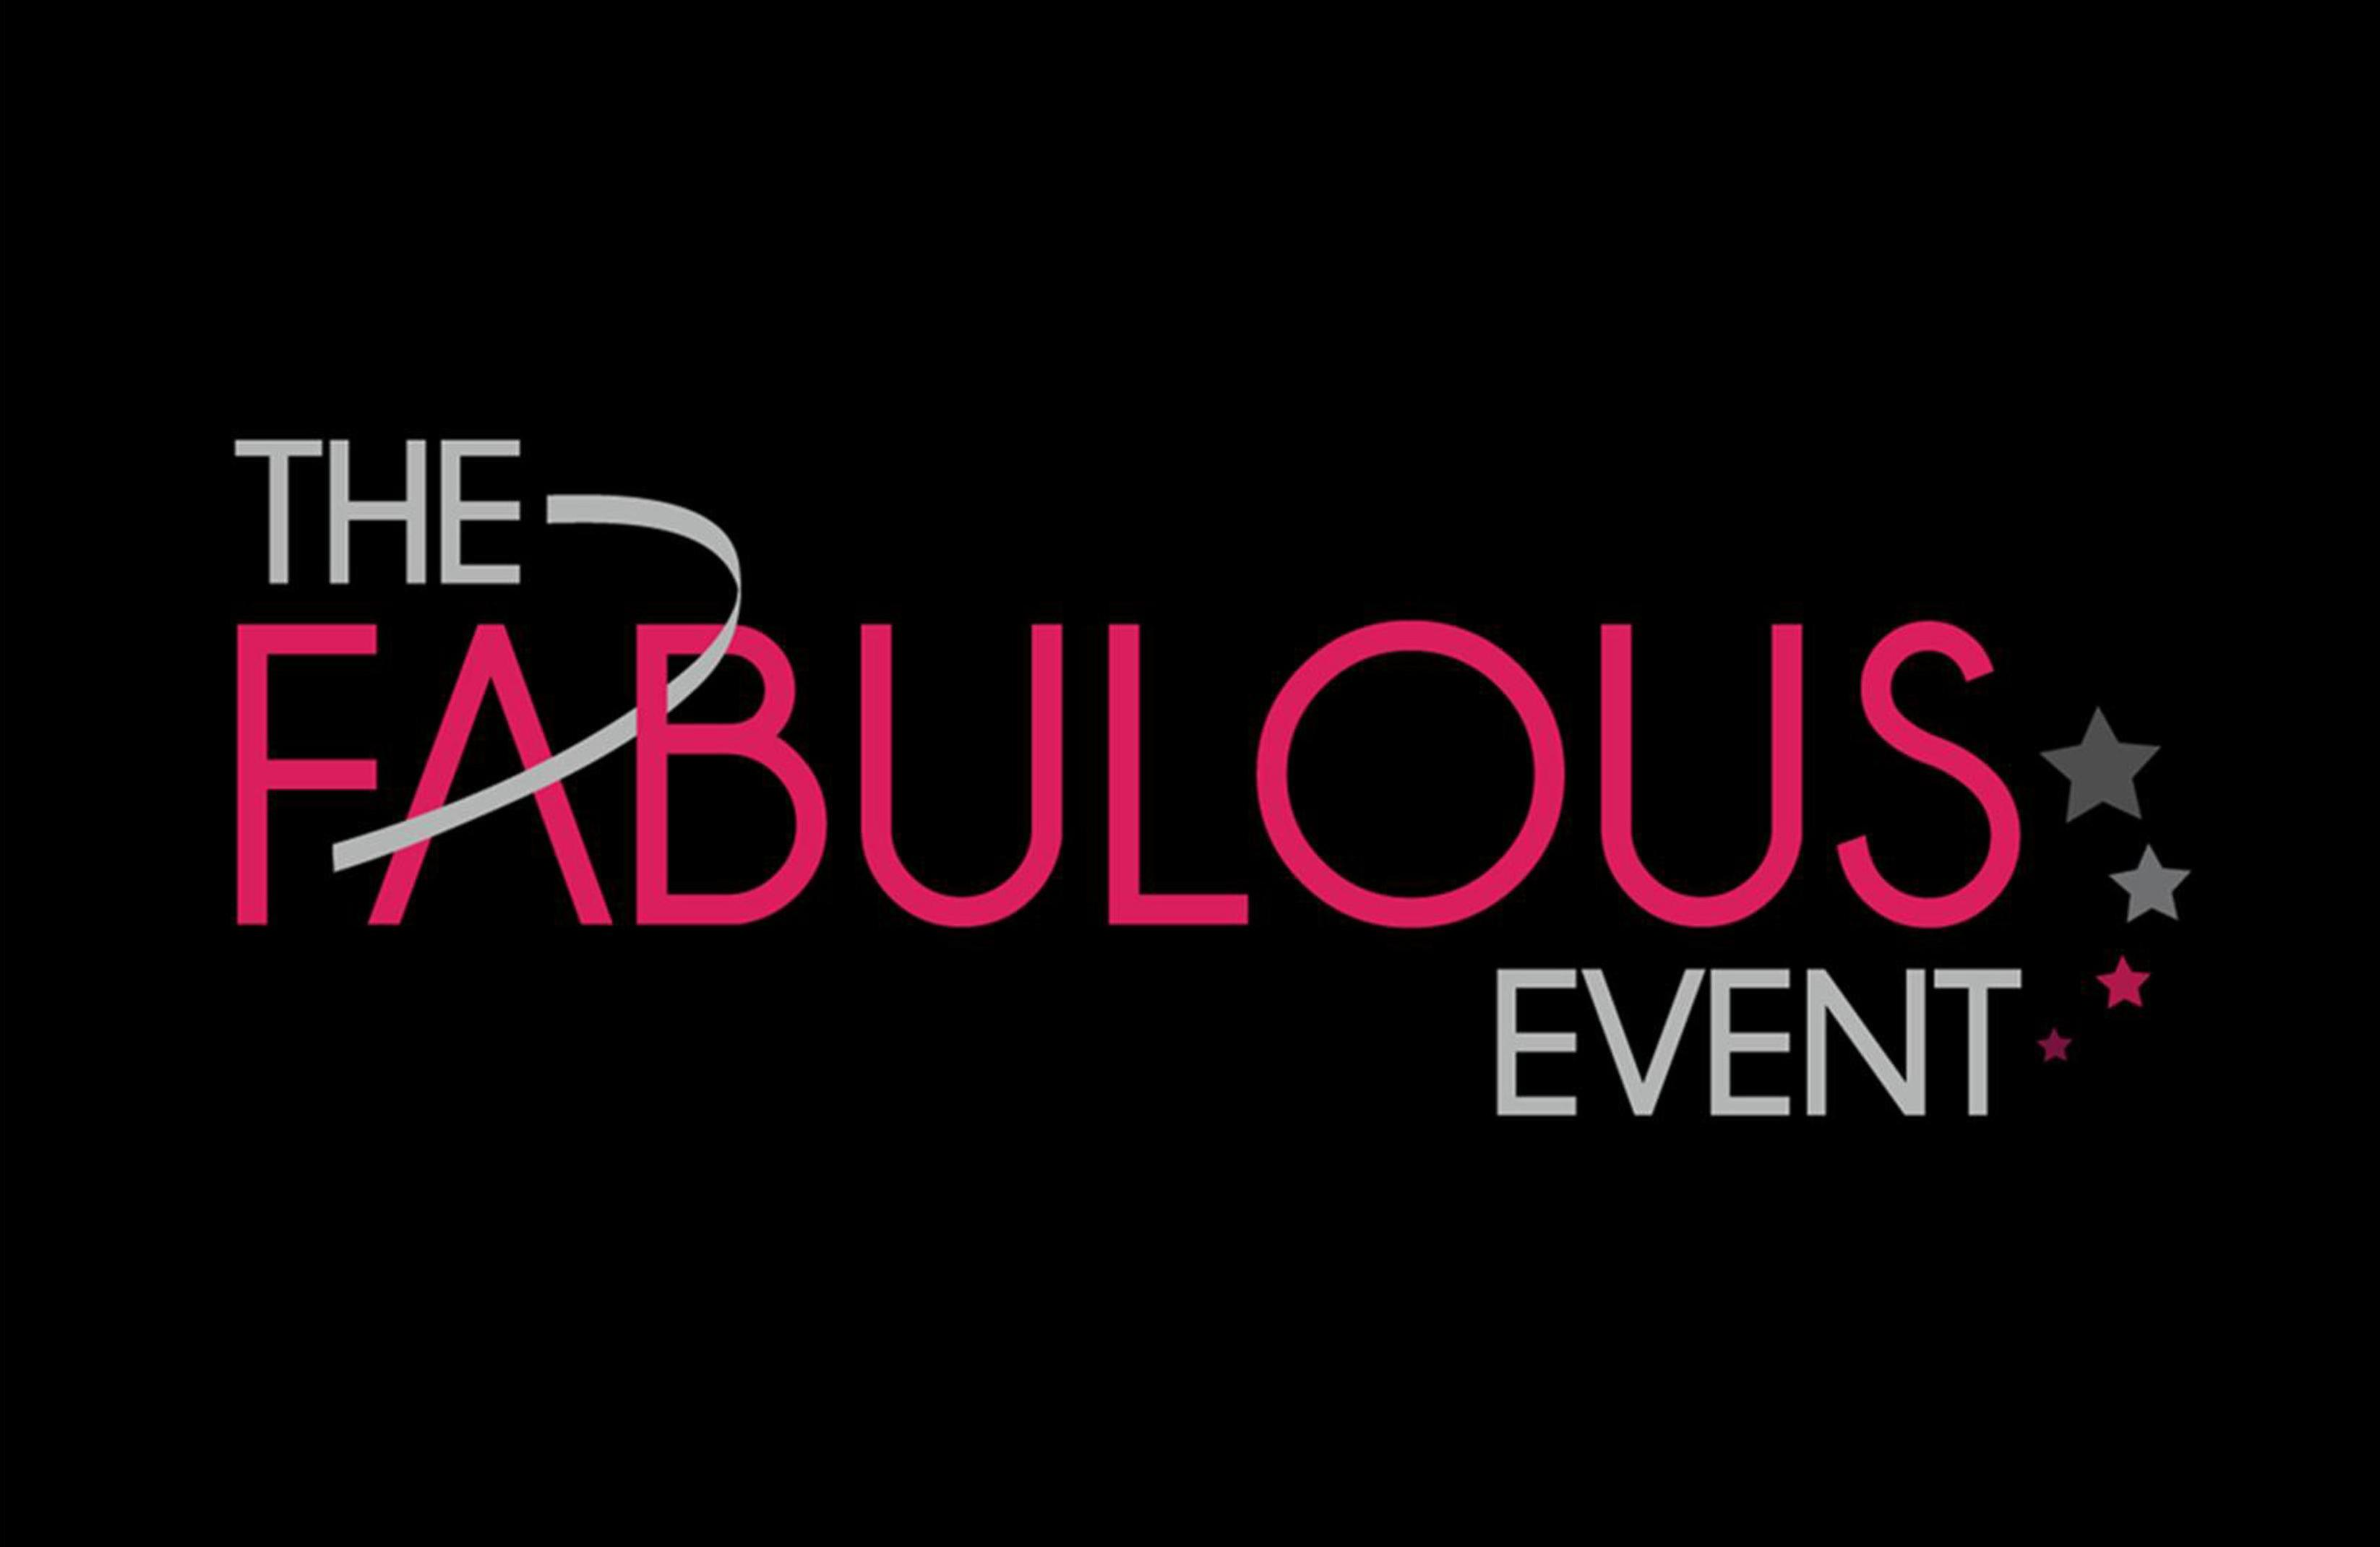 Another amazing sponsor- The Fabulous Event